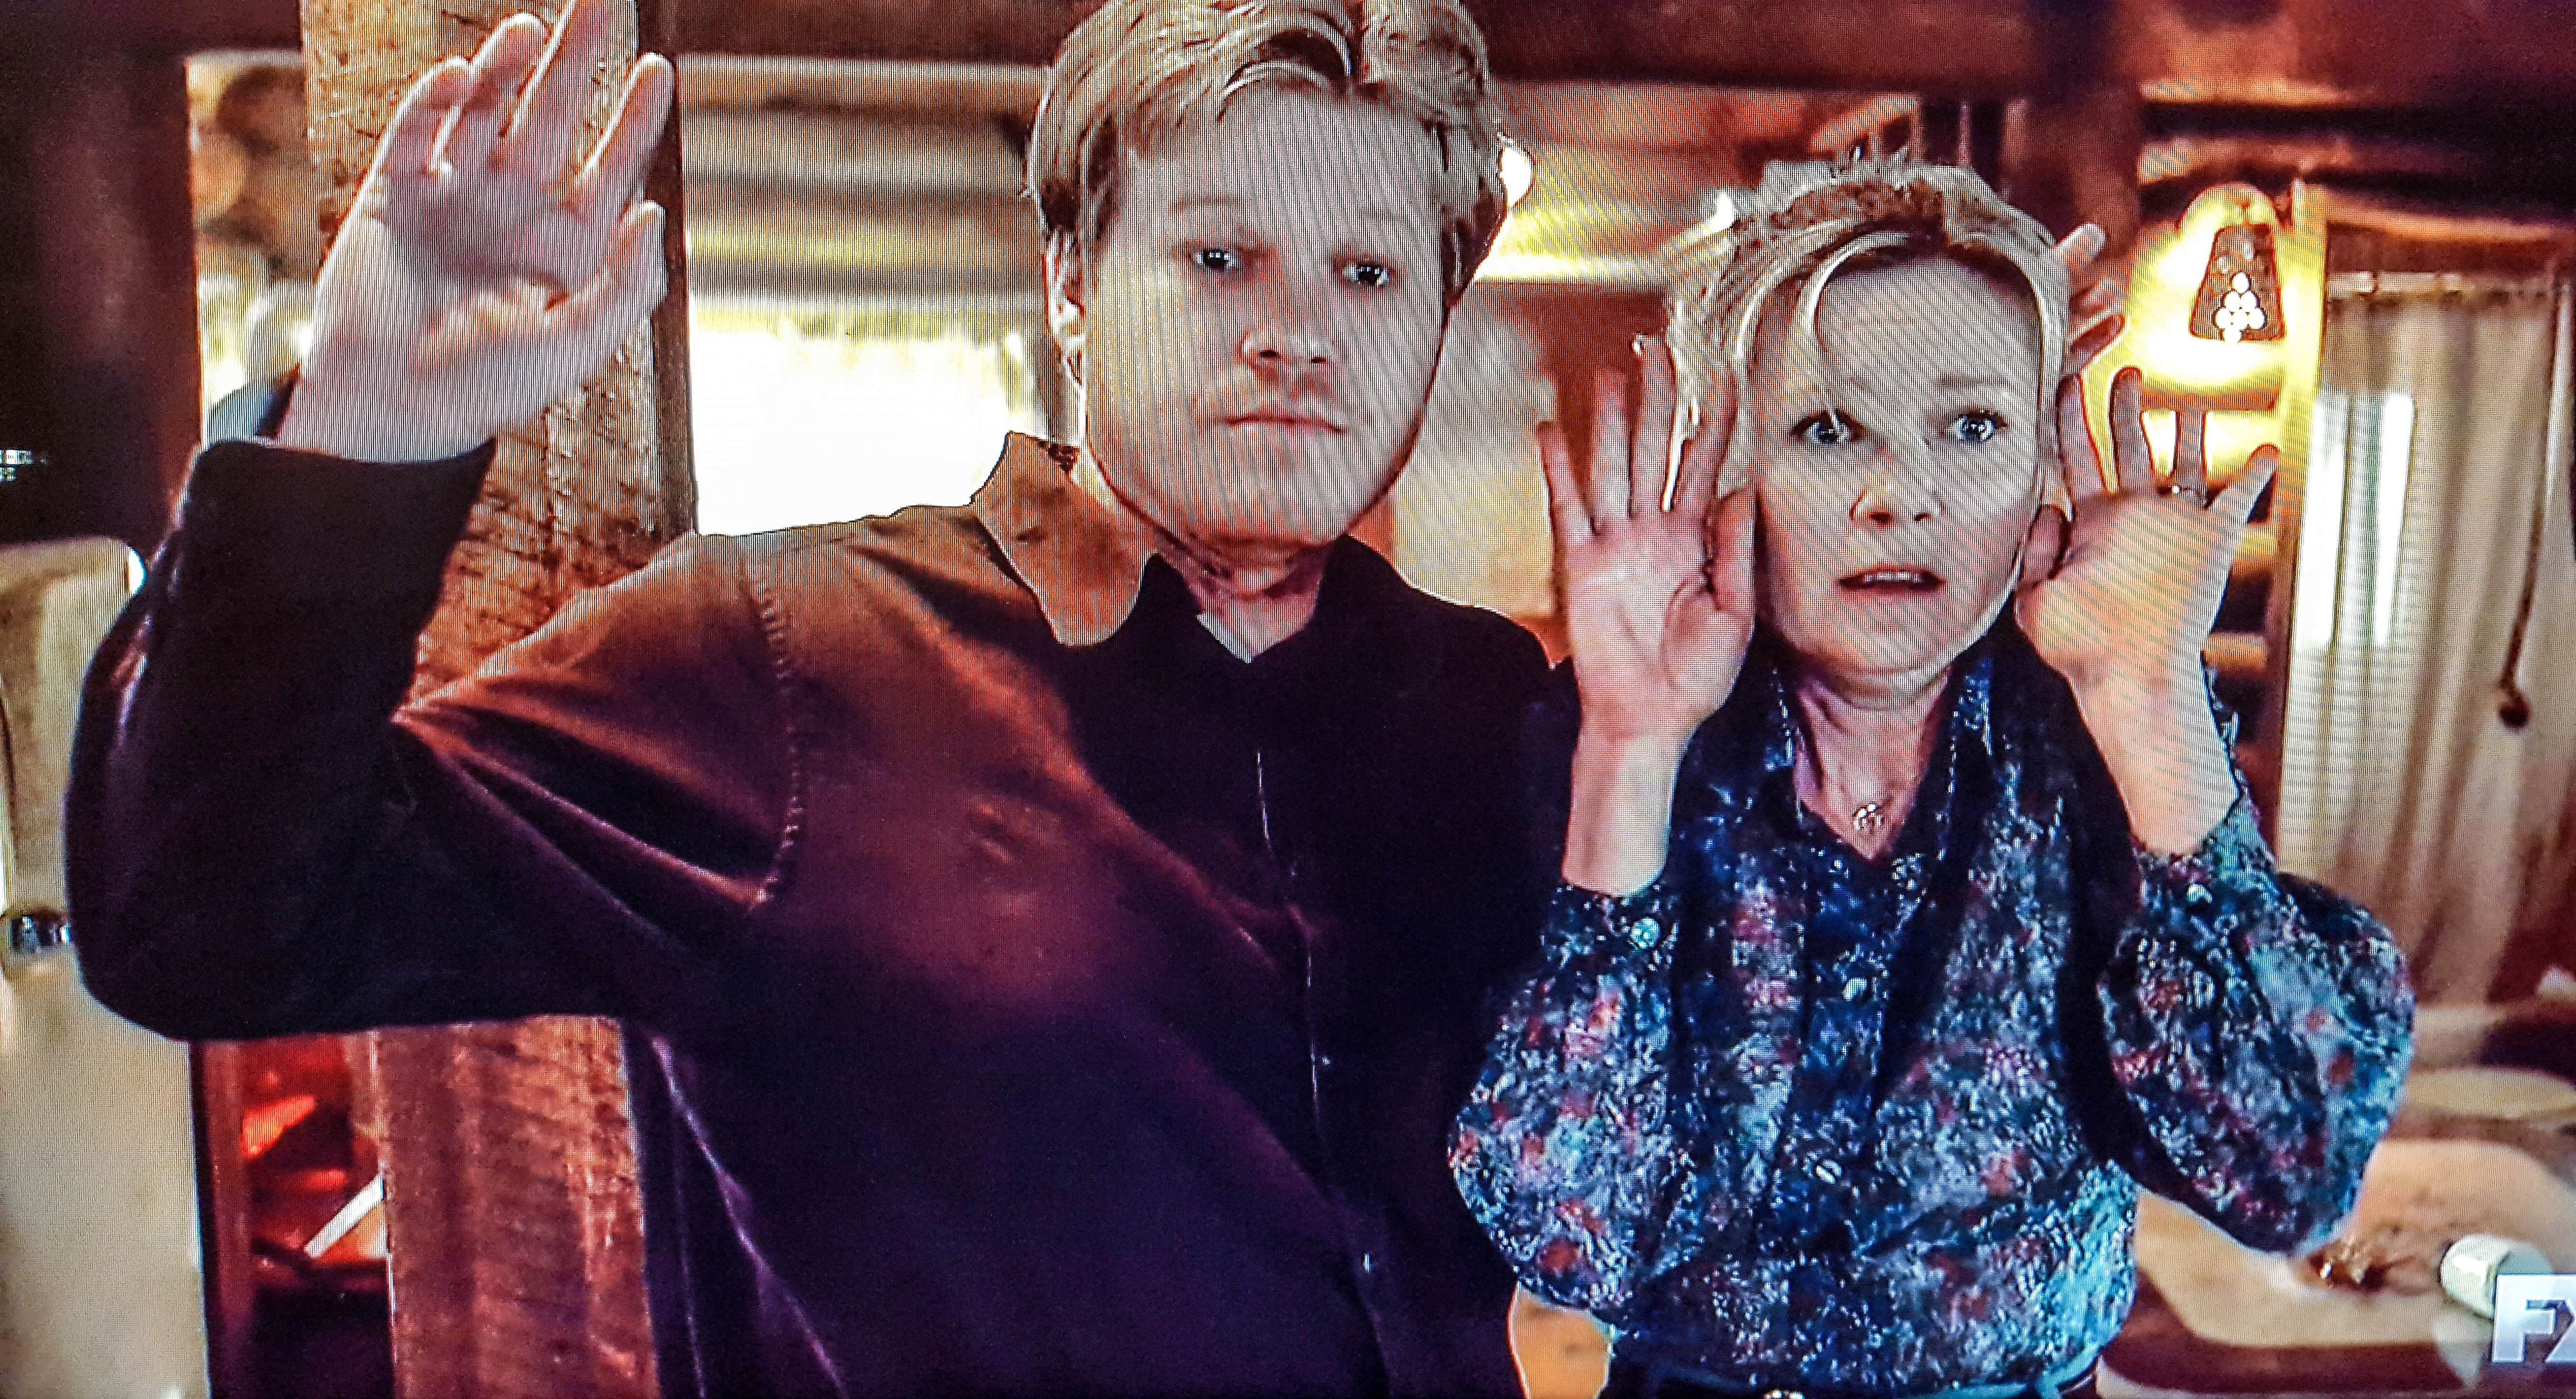 Ed and Peggy in an episode of Fargo called LopLop